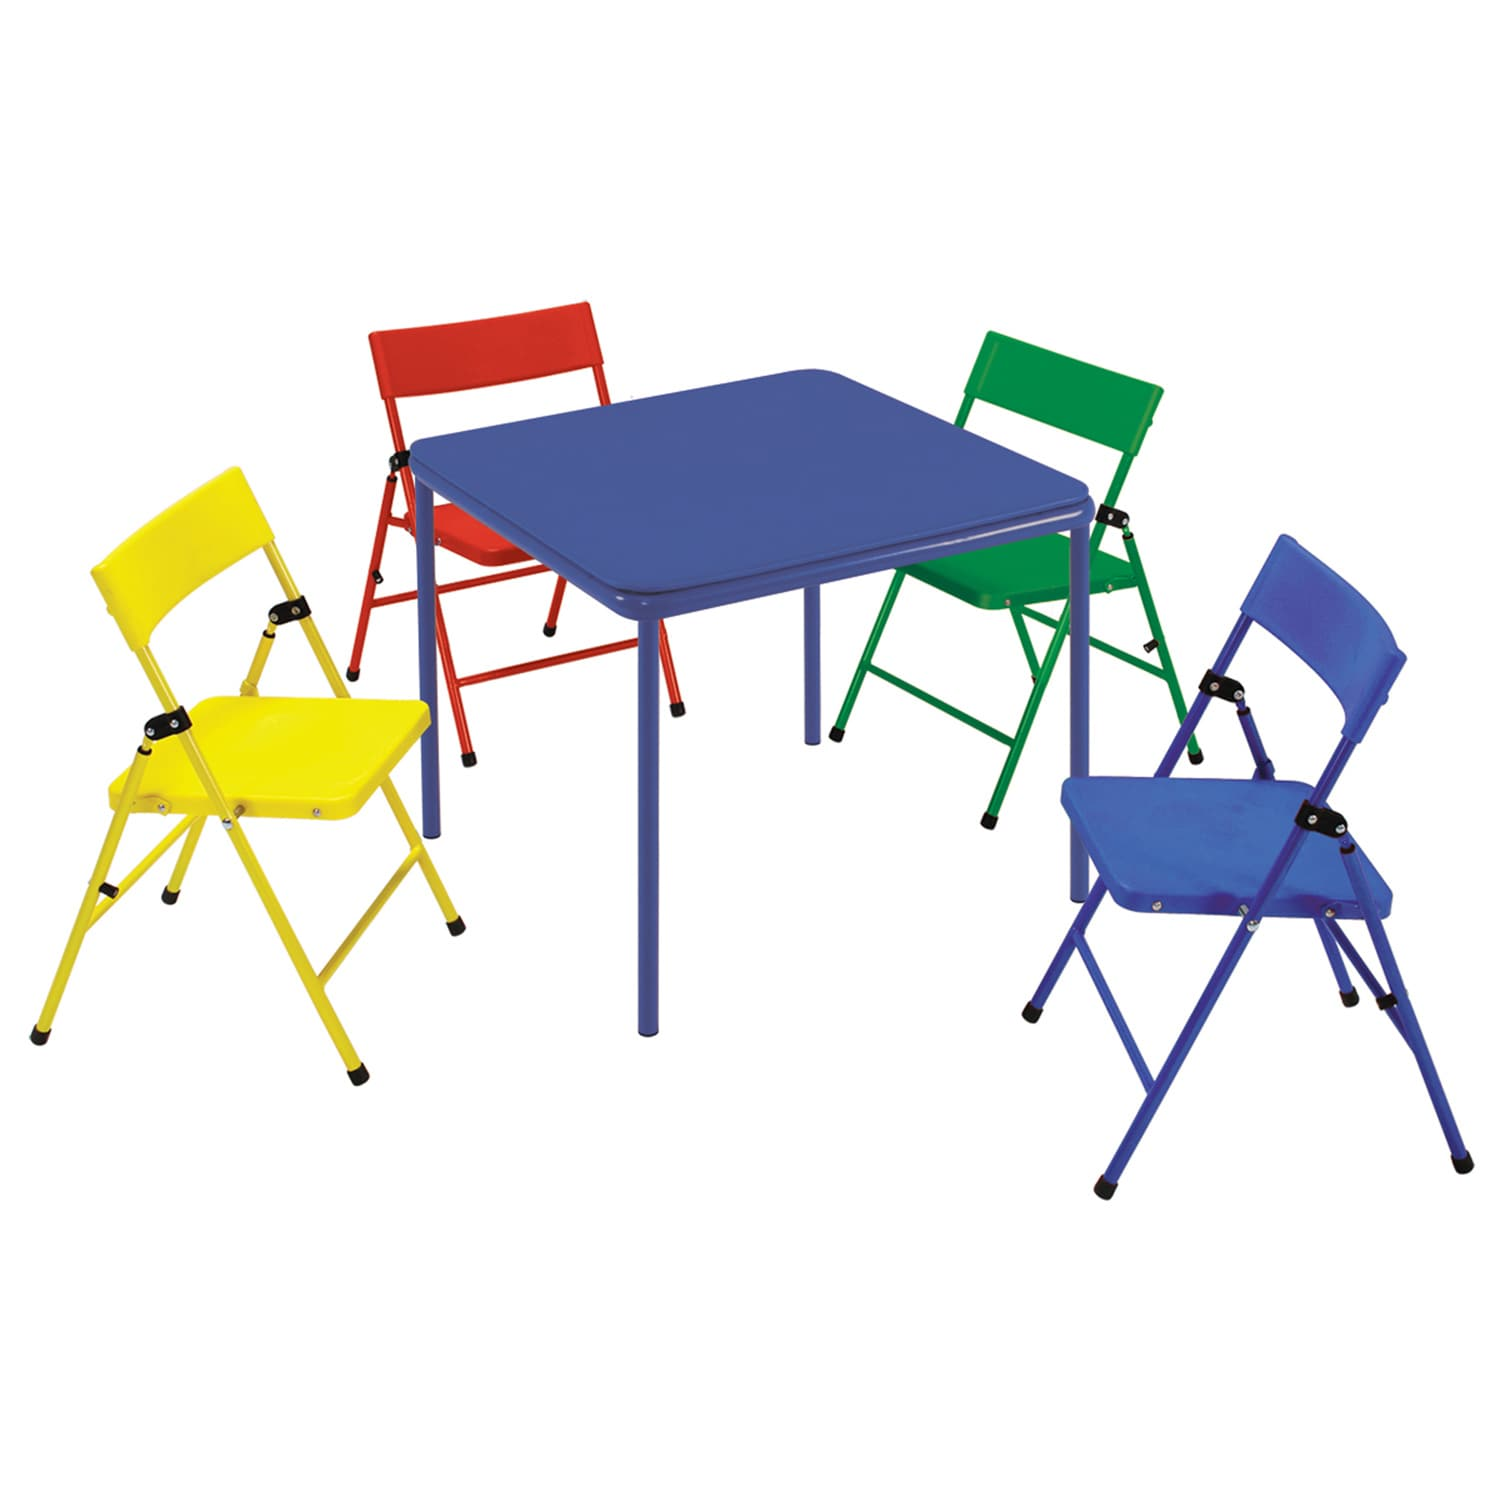 59 Table And Chair Set Walmart Cosco 5 Piece Folding: Cosco Kid's 5-piece Colored Folding Chair And Table Set